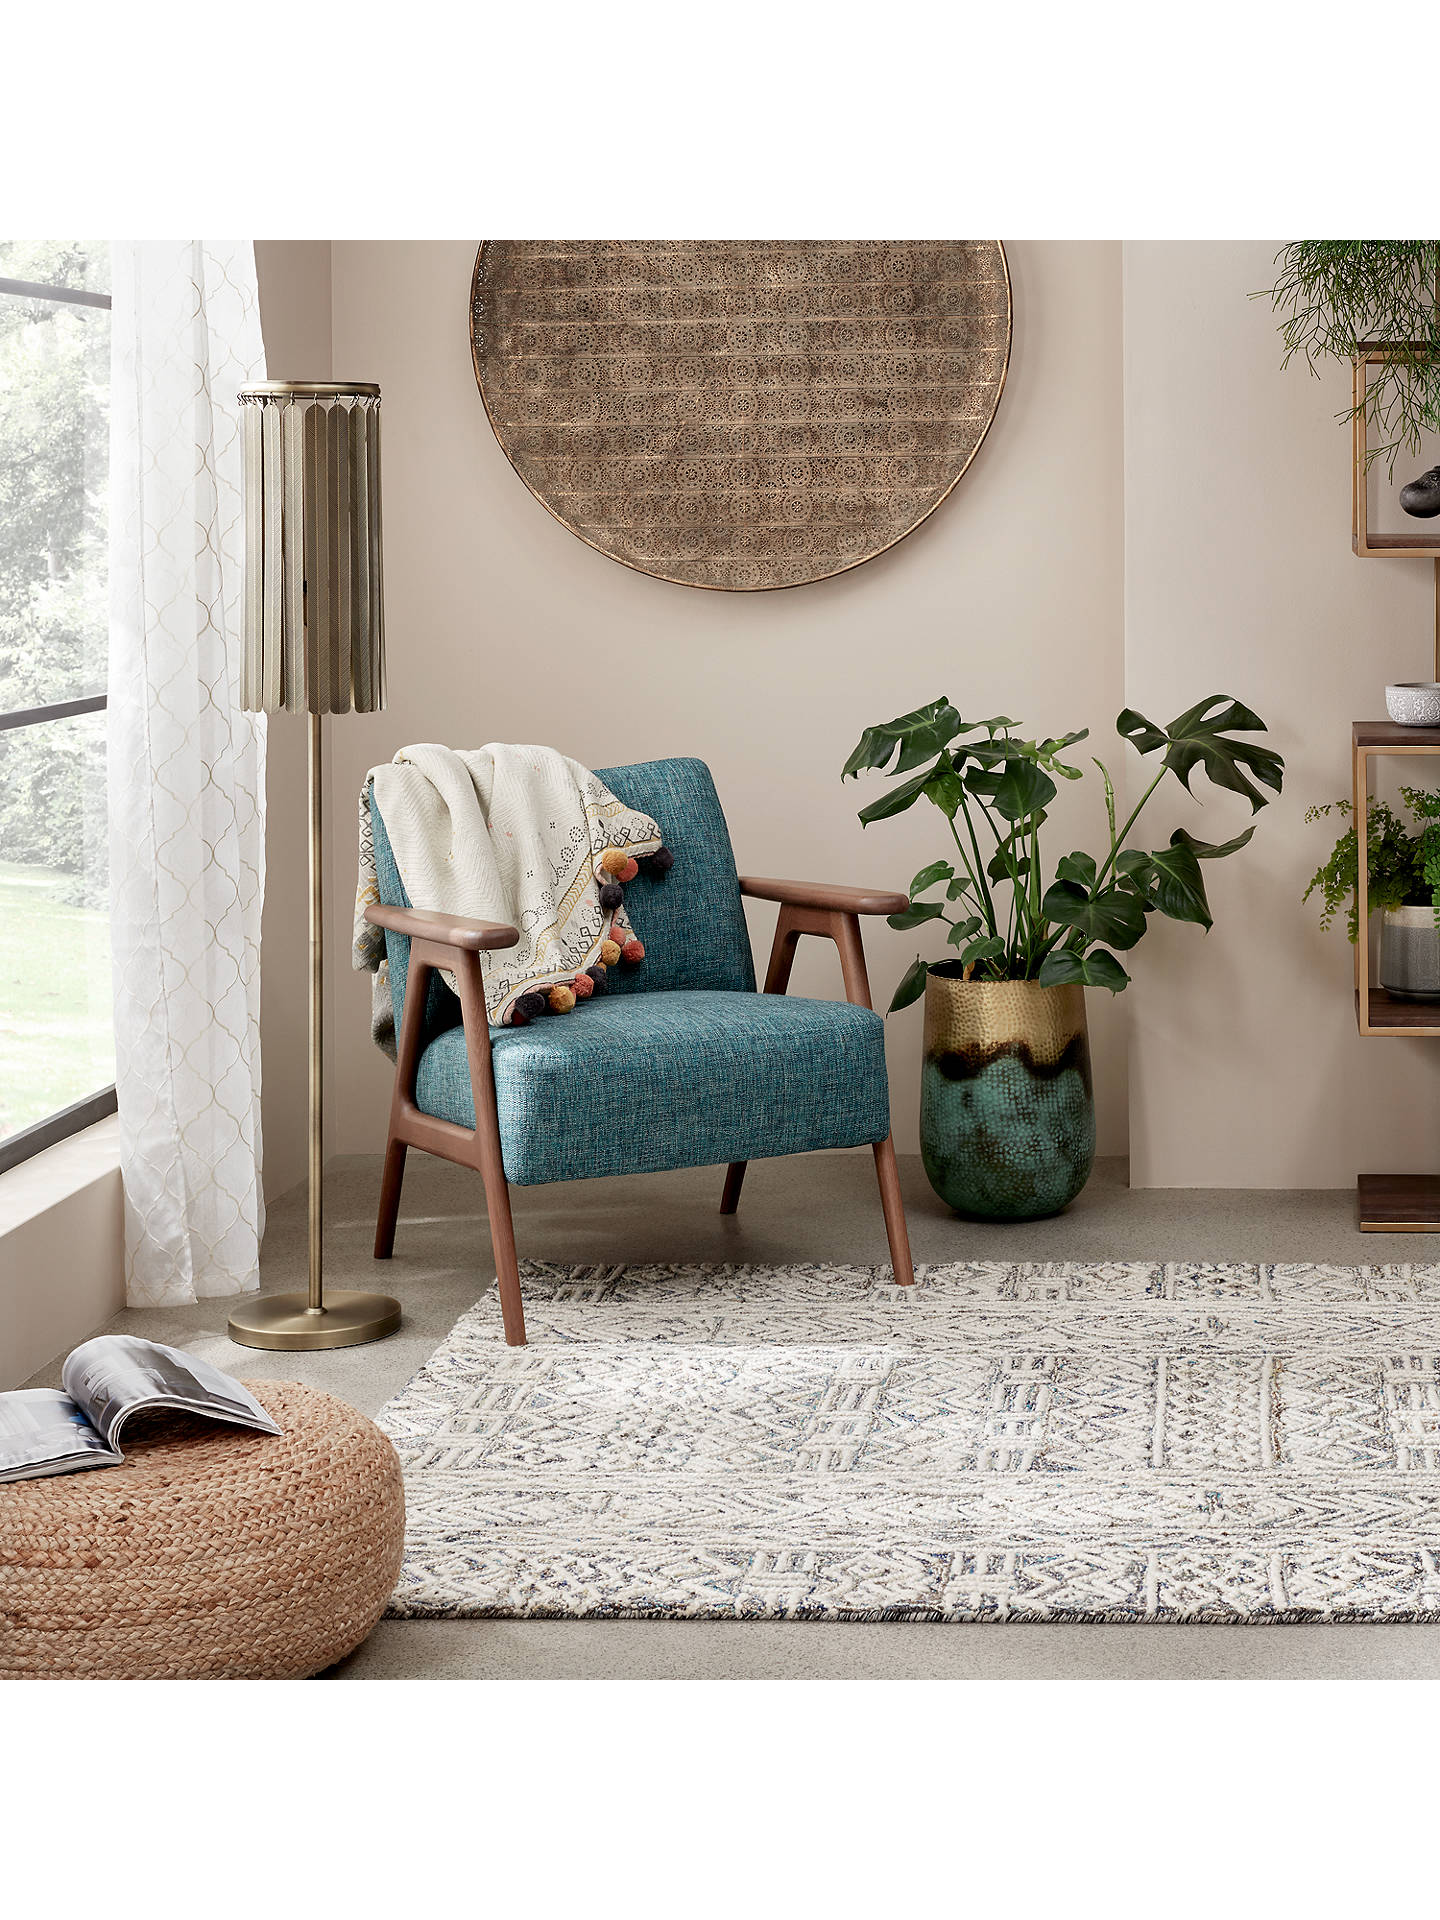 BuyJohn Lewis & Partners Chennai Diamonds Rug, Natural, L180 x W120cm Online at johnlewis.com